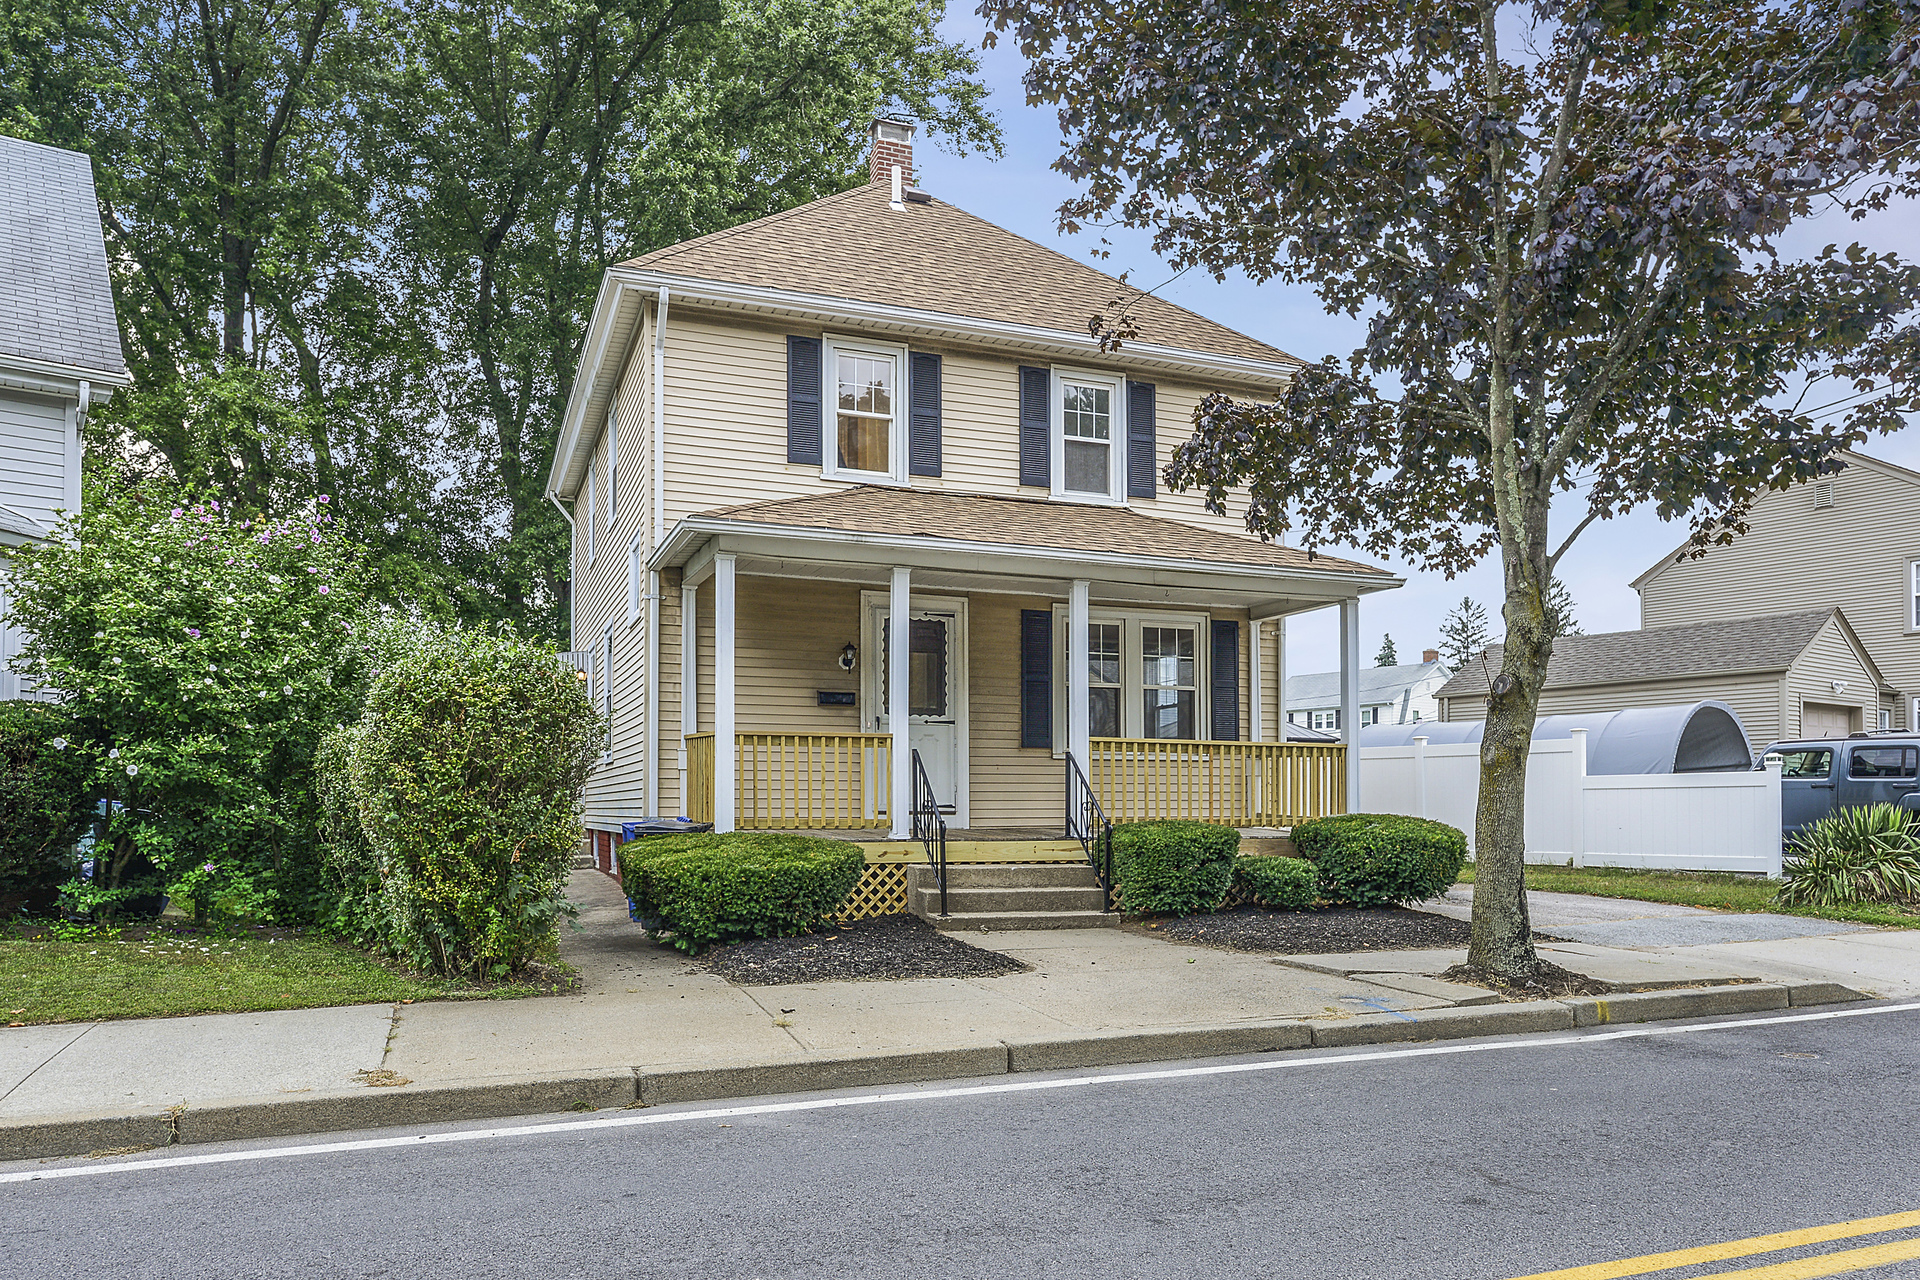 1969 Cranston St. Cranston, RI | Sunday 8/18 from 11 to 1:00pm